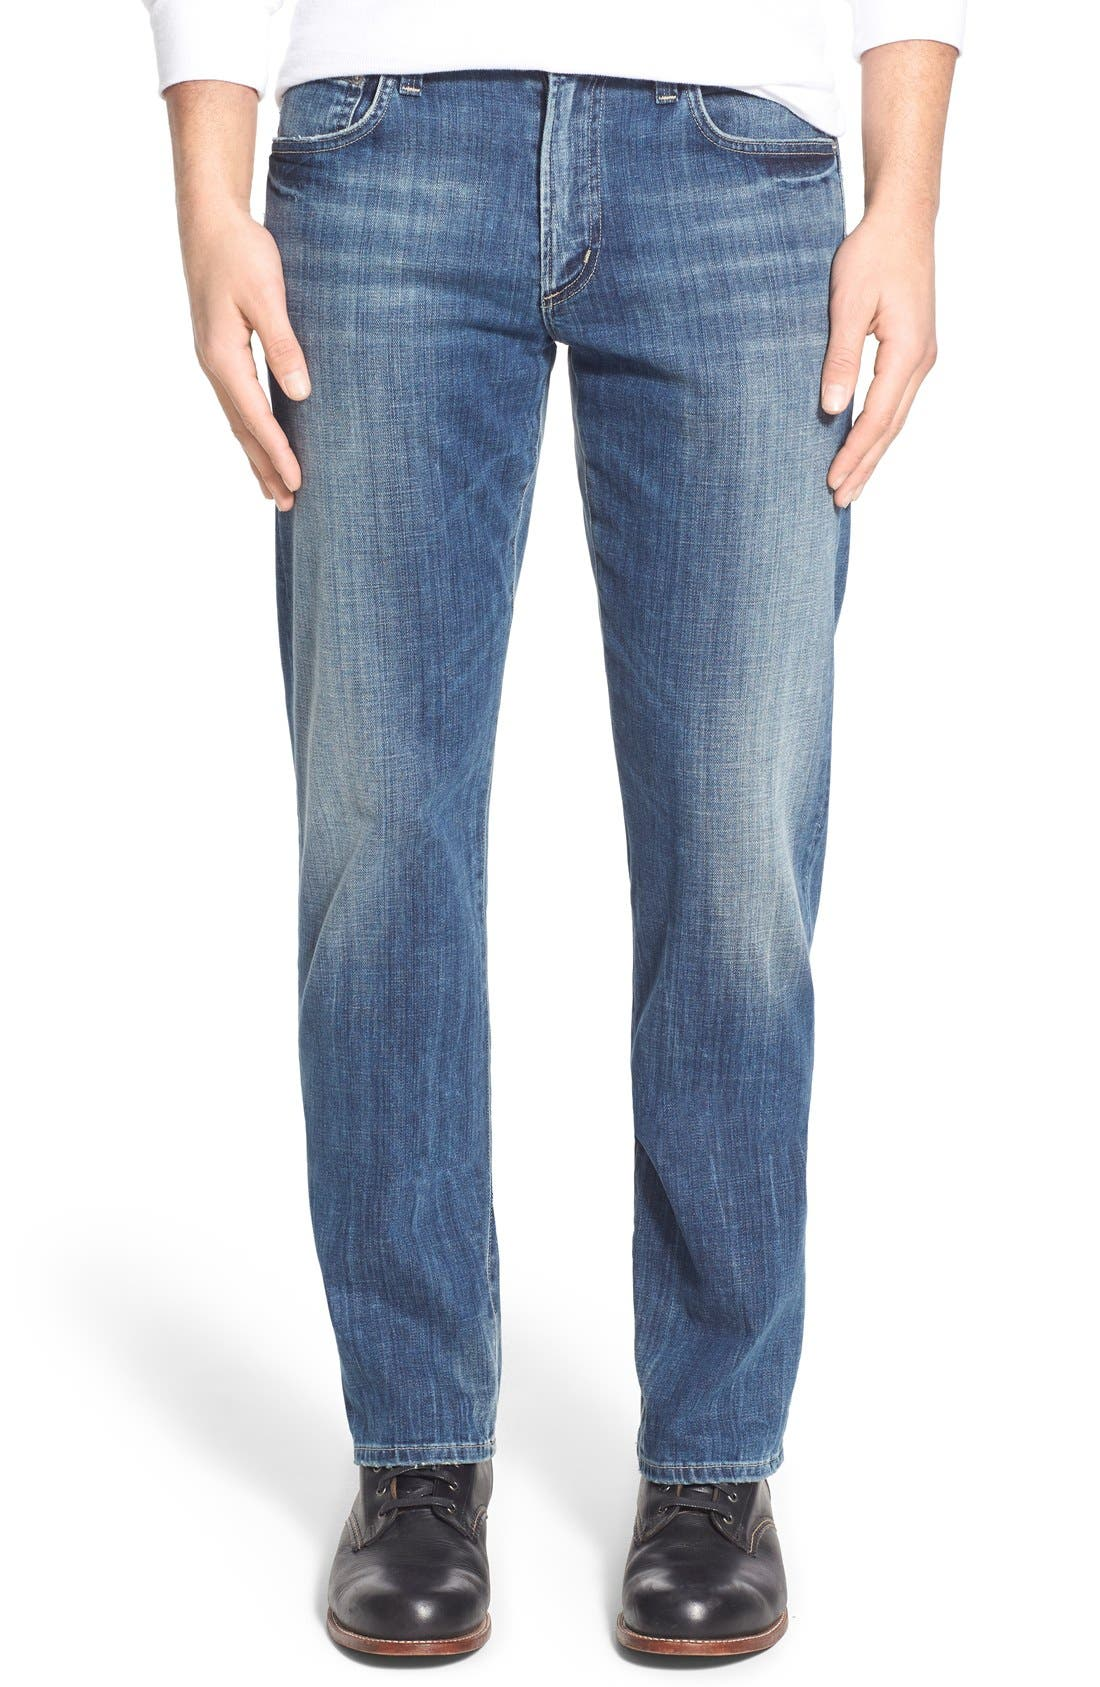 'Sid' Straight Leg Jeans,                             Main thumbnail 1, color,                             430